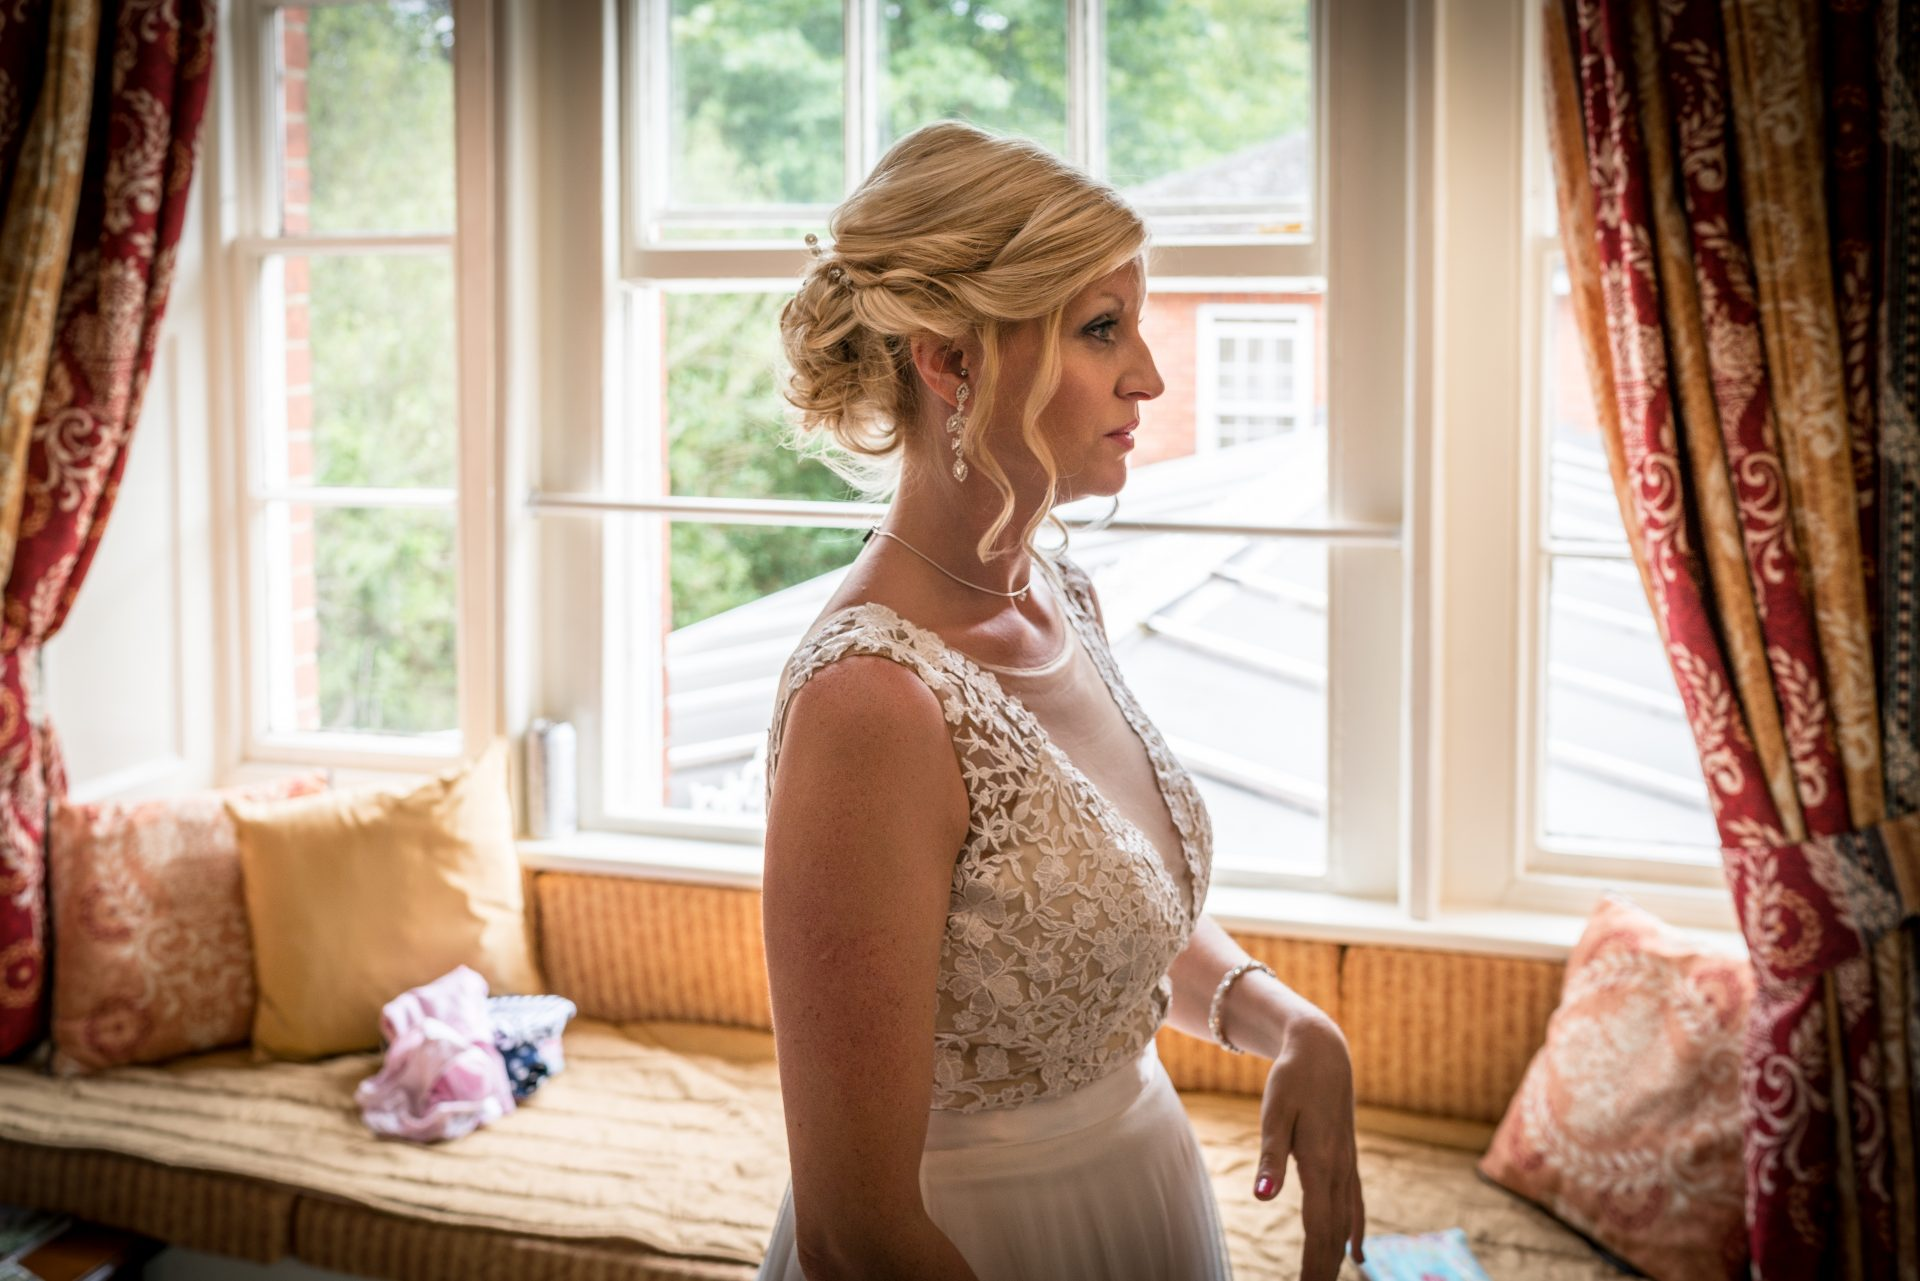 YFFUK Phil Endicott Murray Best Western Moore Place Hotel Aspley Guise bride getting ready to say her vows